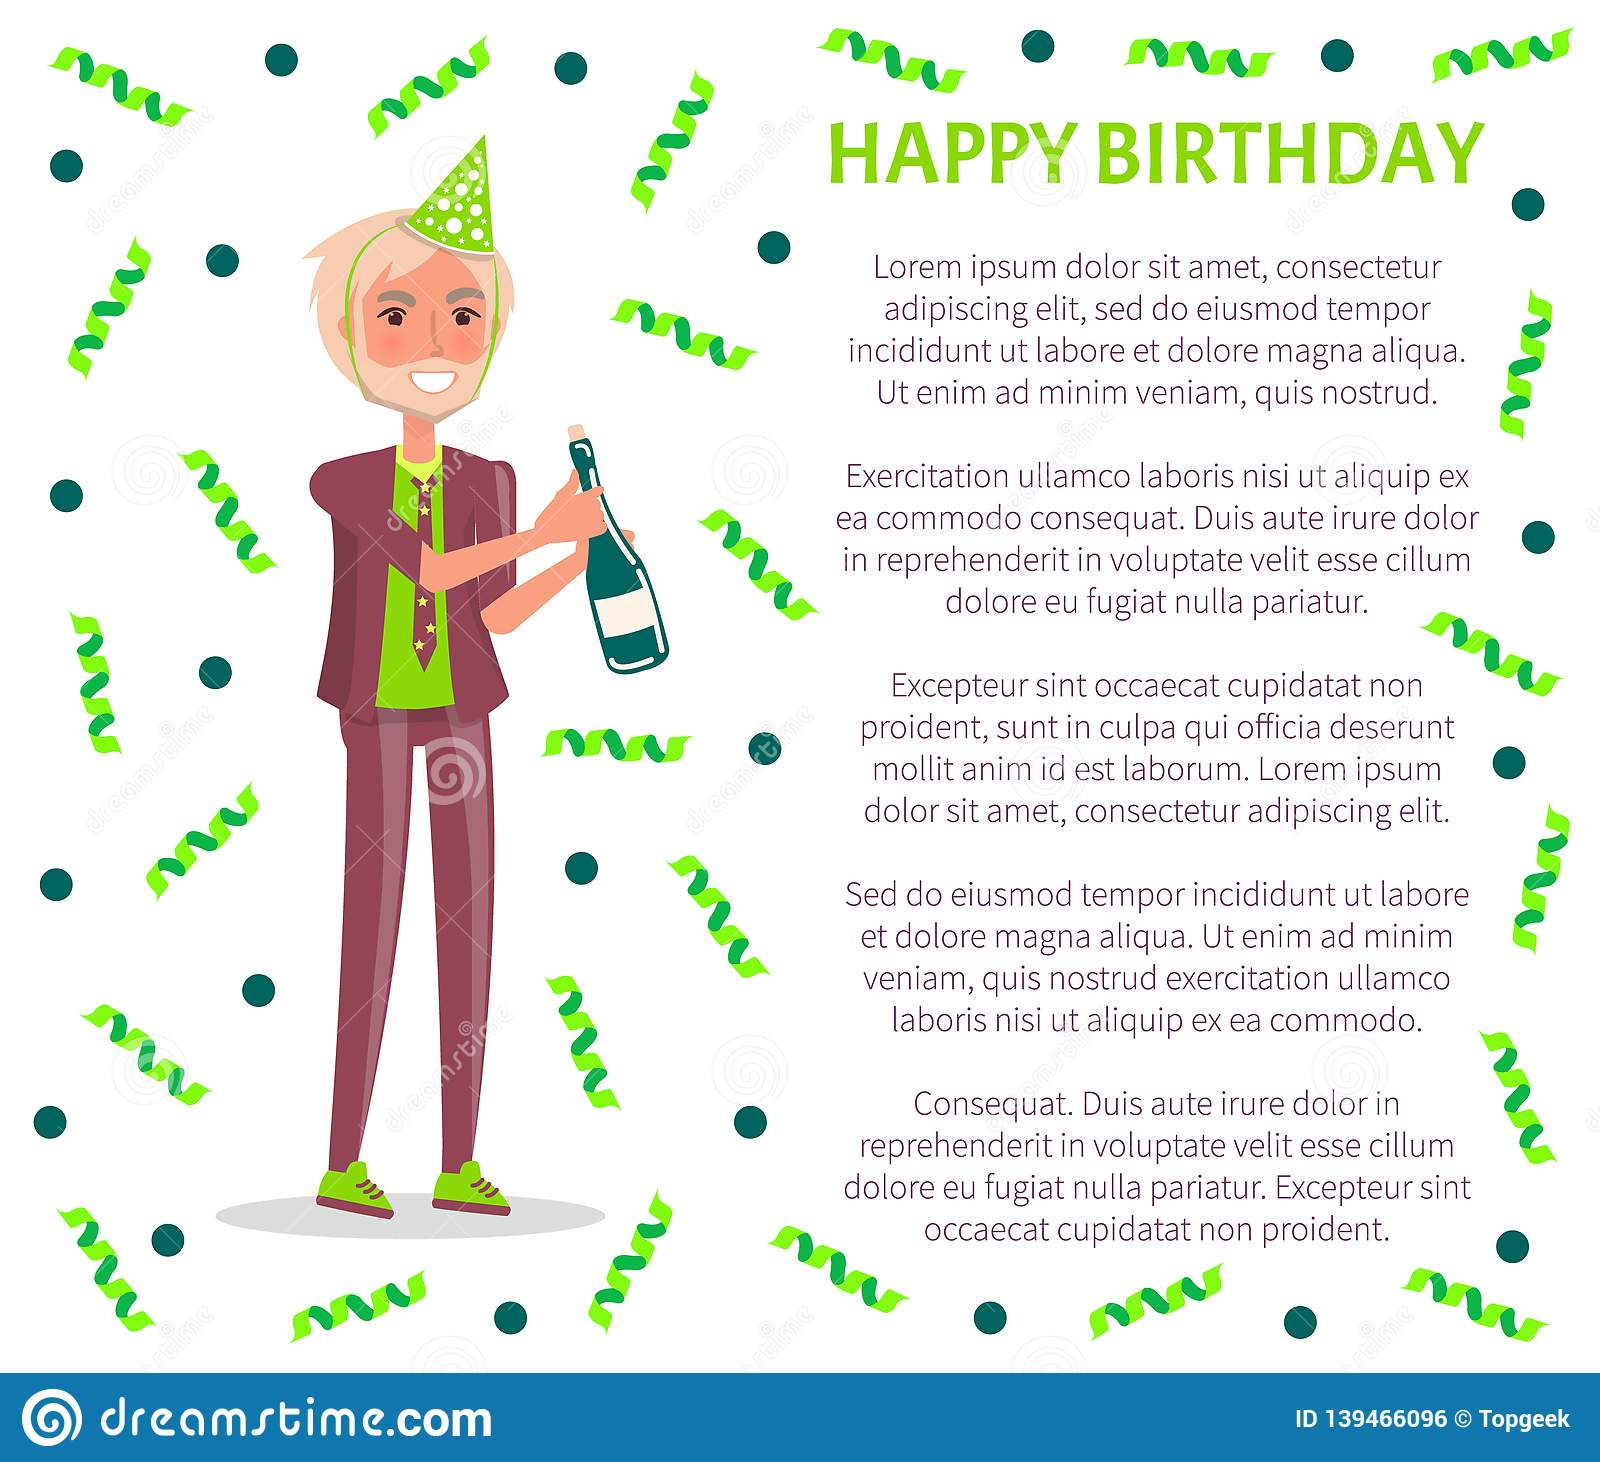 Happy Birthday Greeting Poster Man In Suit And Festive Cap With Champagne Celebrate Bday Party Vector Male Cartoon Character Bursting Confetti